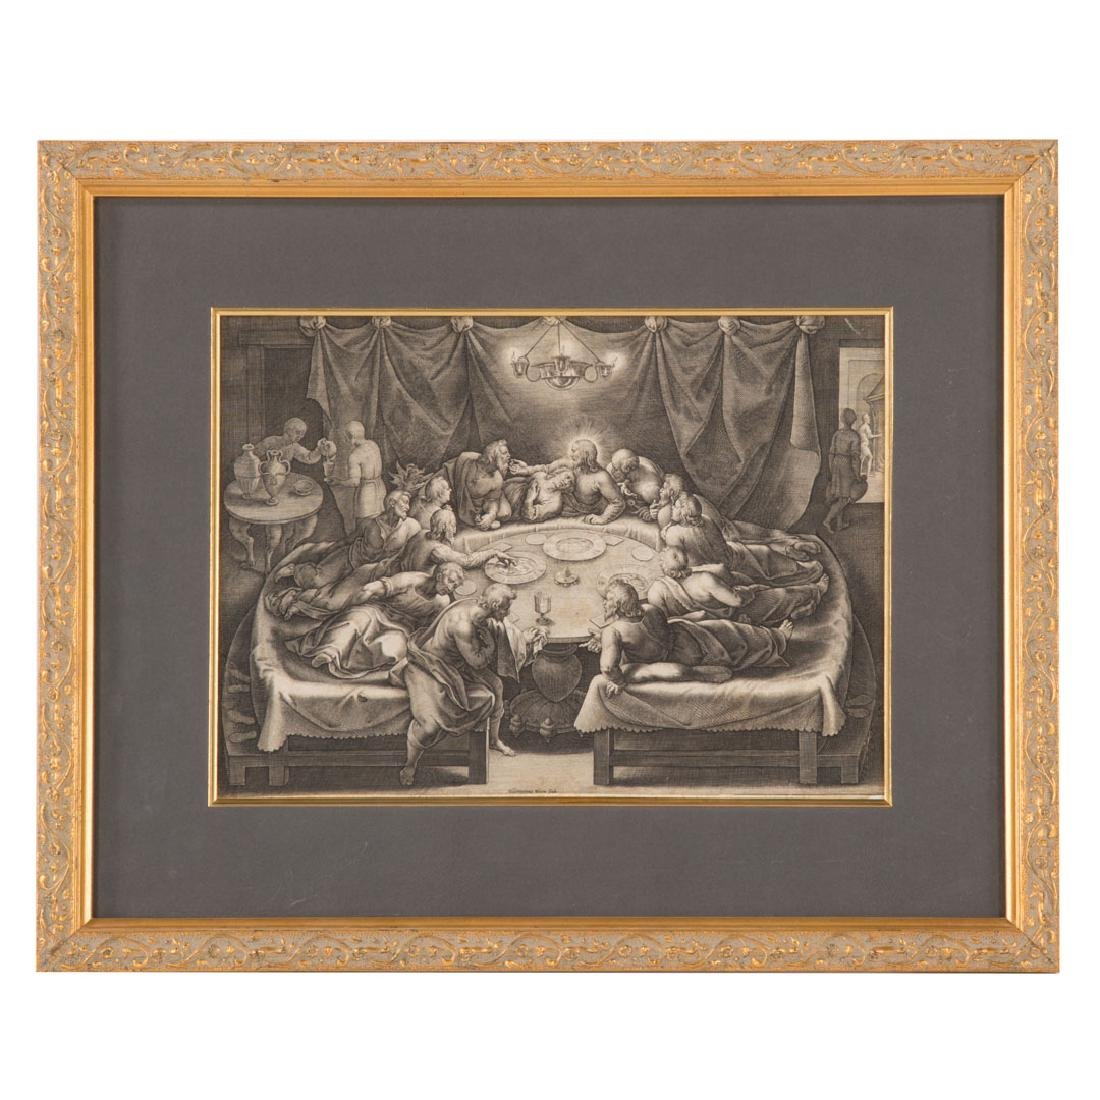 Heironymus Wierix. The Last Supper, engraving